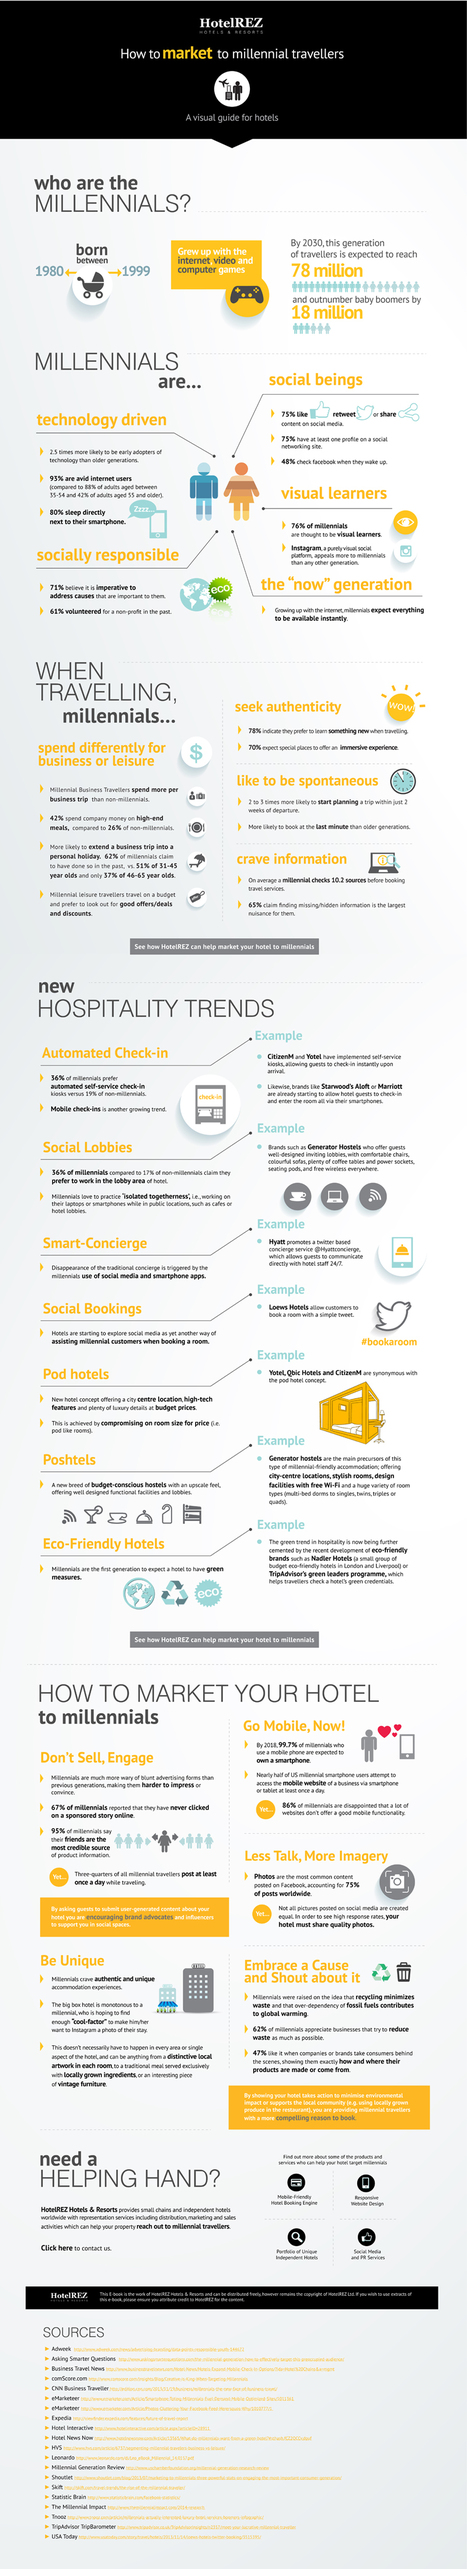 Infographic: Marketing Tips for Millennial Travellers | Hotel Marketing | Scoop.it